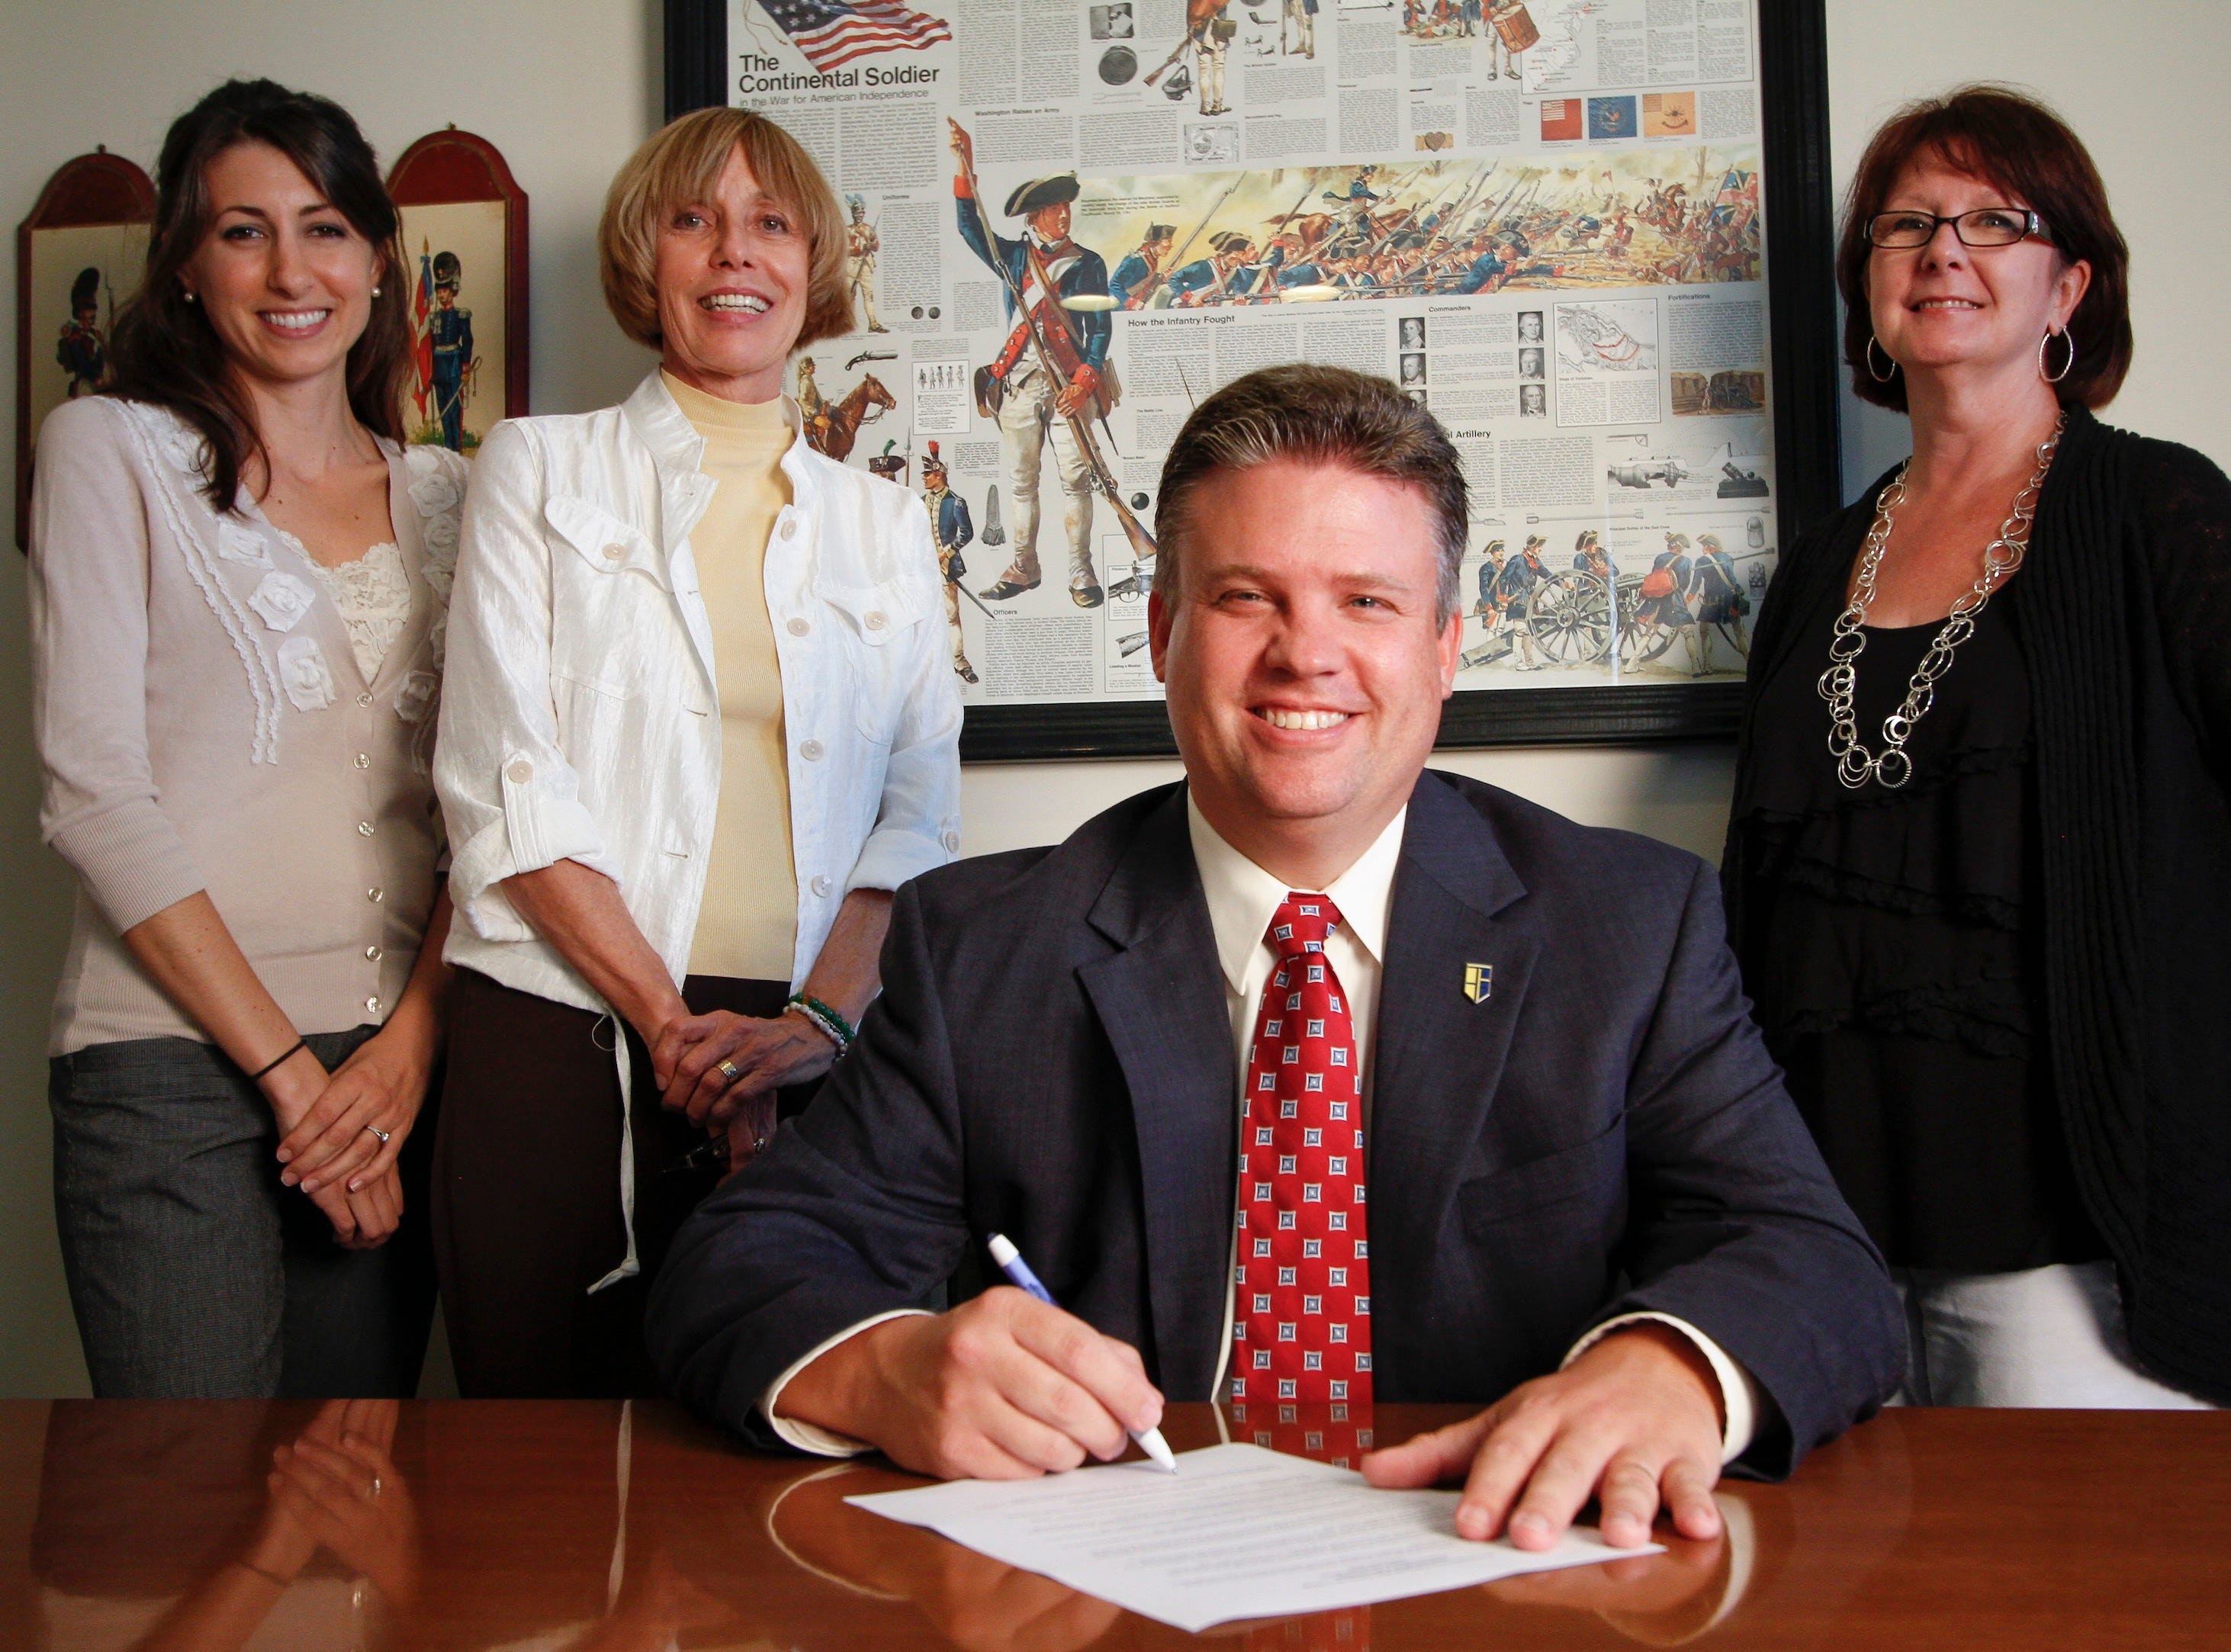 Contributed photoPellissippi State Community College President L. Anthony Wise Jr. signed a proclamation naming September as Suicide Prevention Awareness Month on all Pellissippi State campuses. Joining him, from left, are College counselors Lisa Orient, Elizabeth Firestone and Kathleen Douthat.